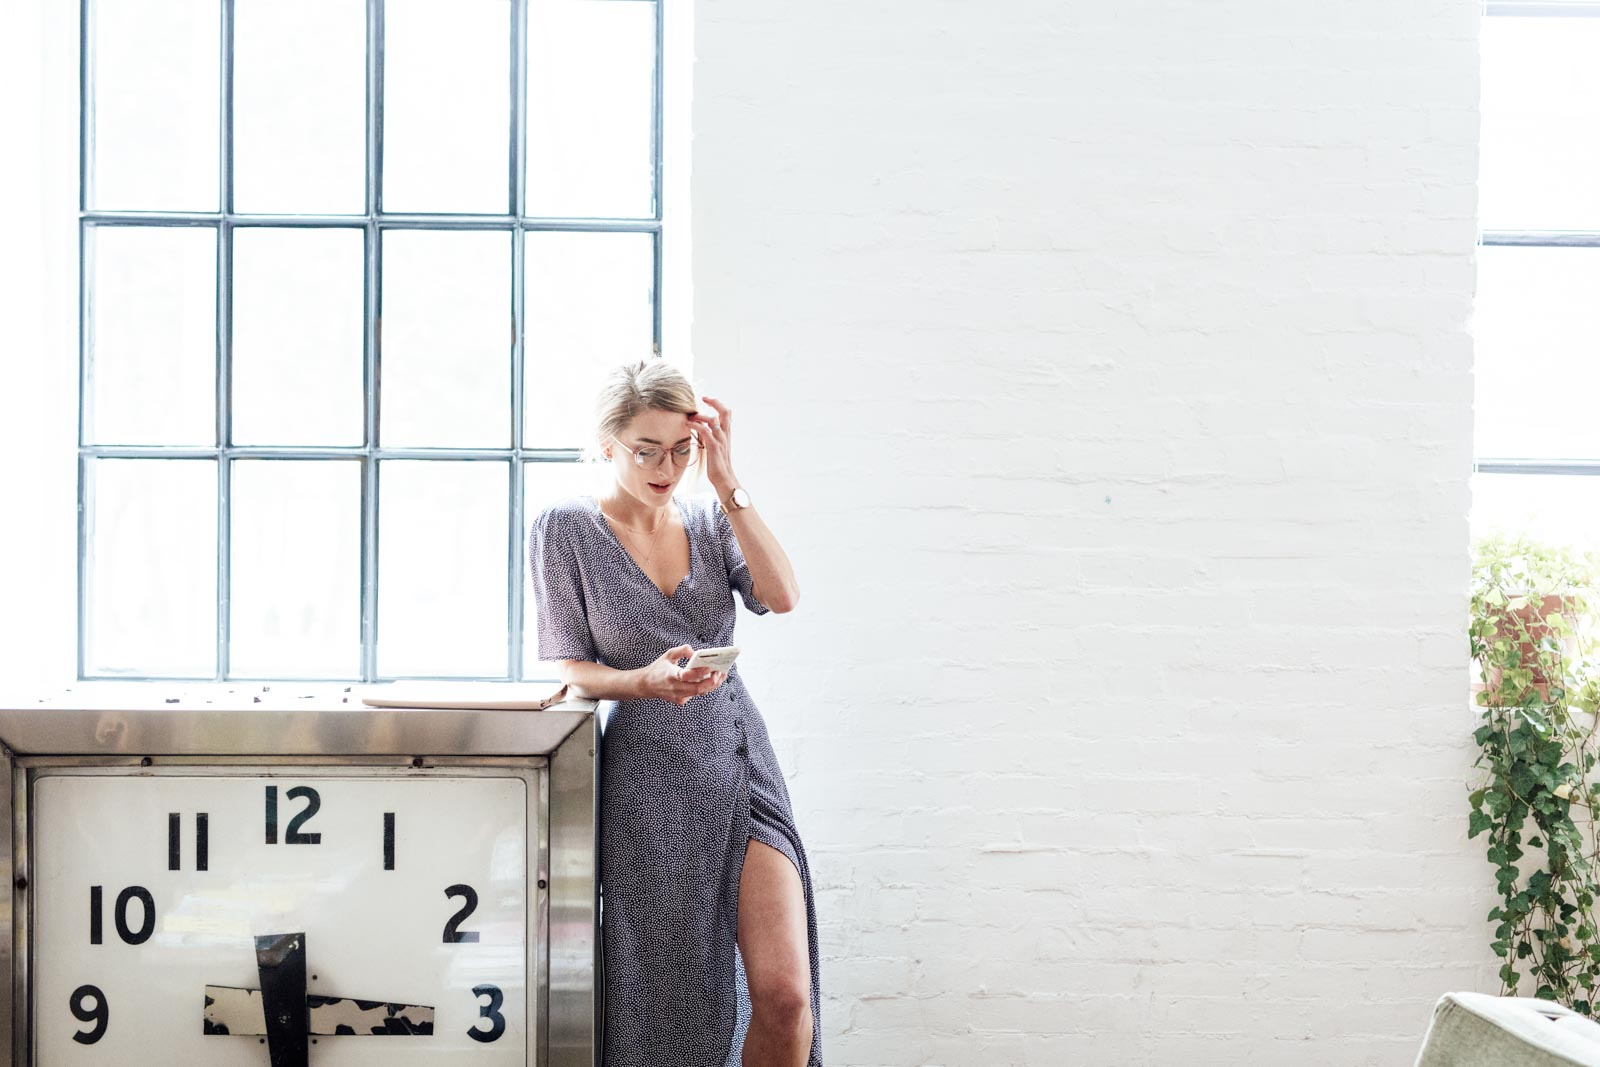 You know what I hate? Networking. And I'm pretty sure I'm not alone in feeling stressed about it. That's why we've rounded up our top 9 networking tips to put you at ease.